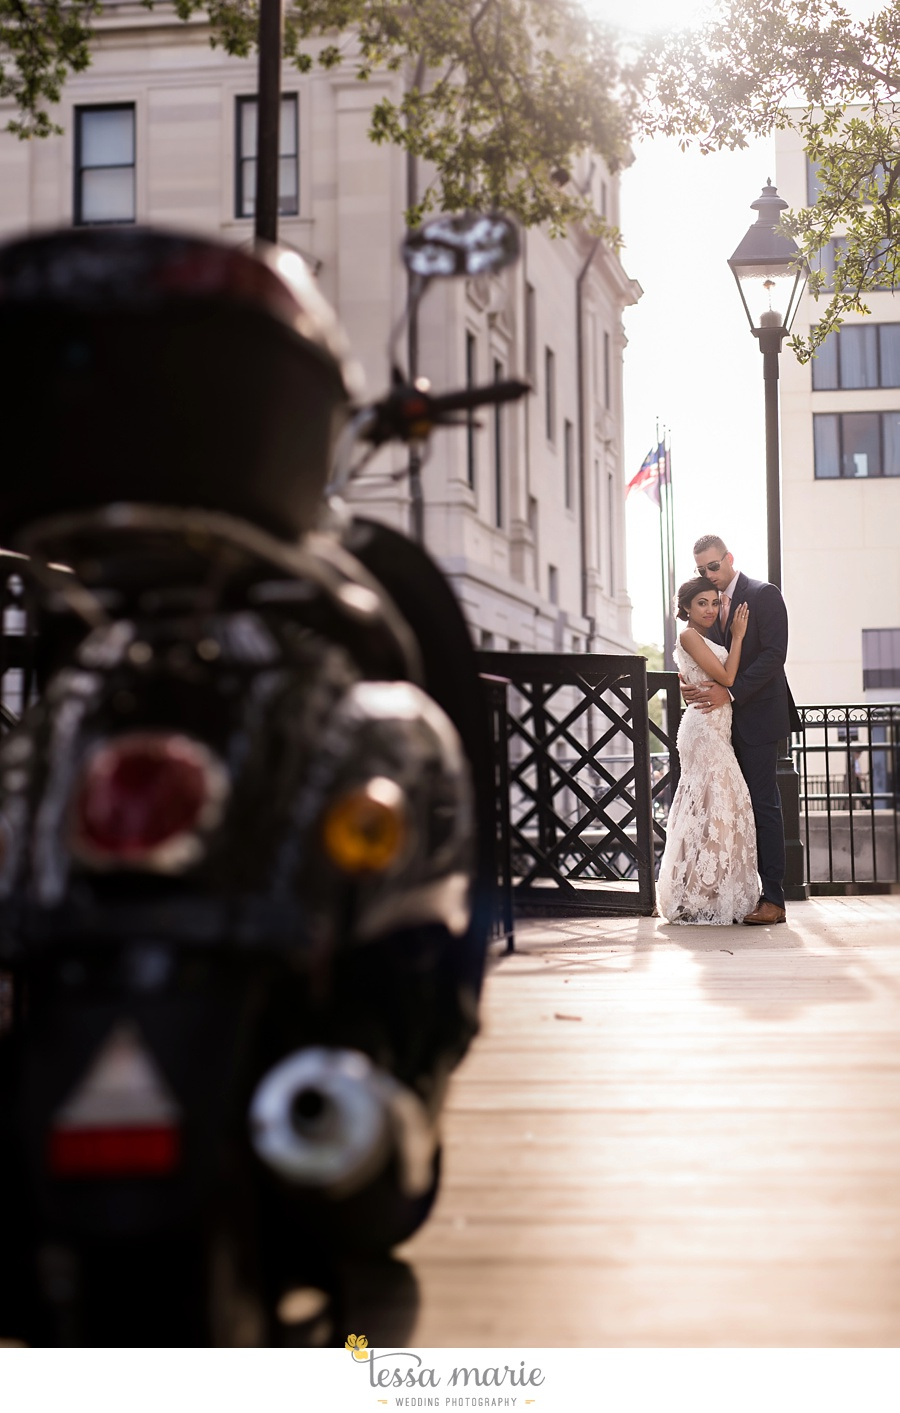 savannah_destination_wedding_photographer_wormsole_elopement_tessa_marie_weddings_essence_of_australia_gown_0145